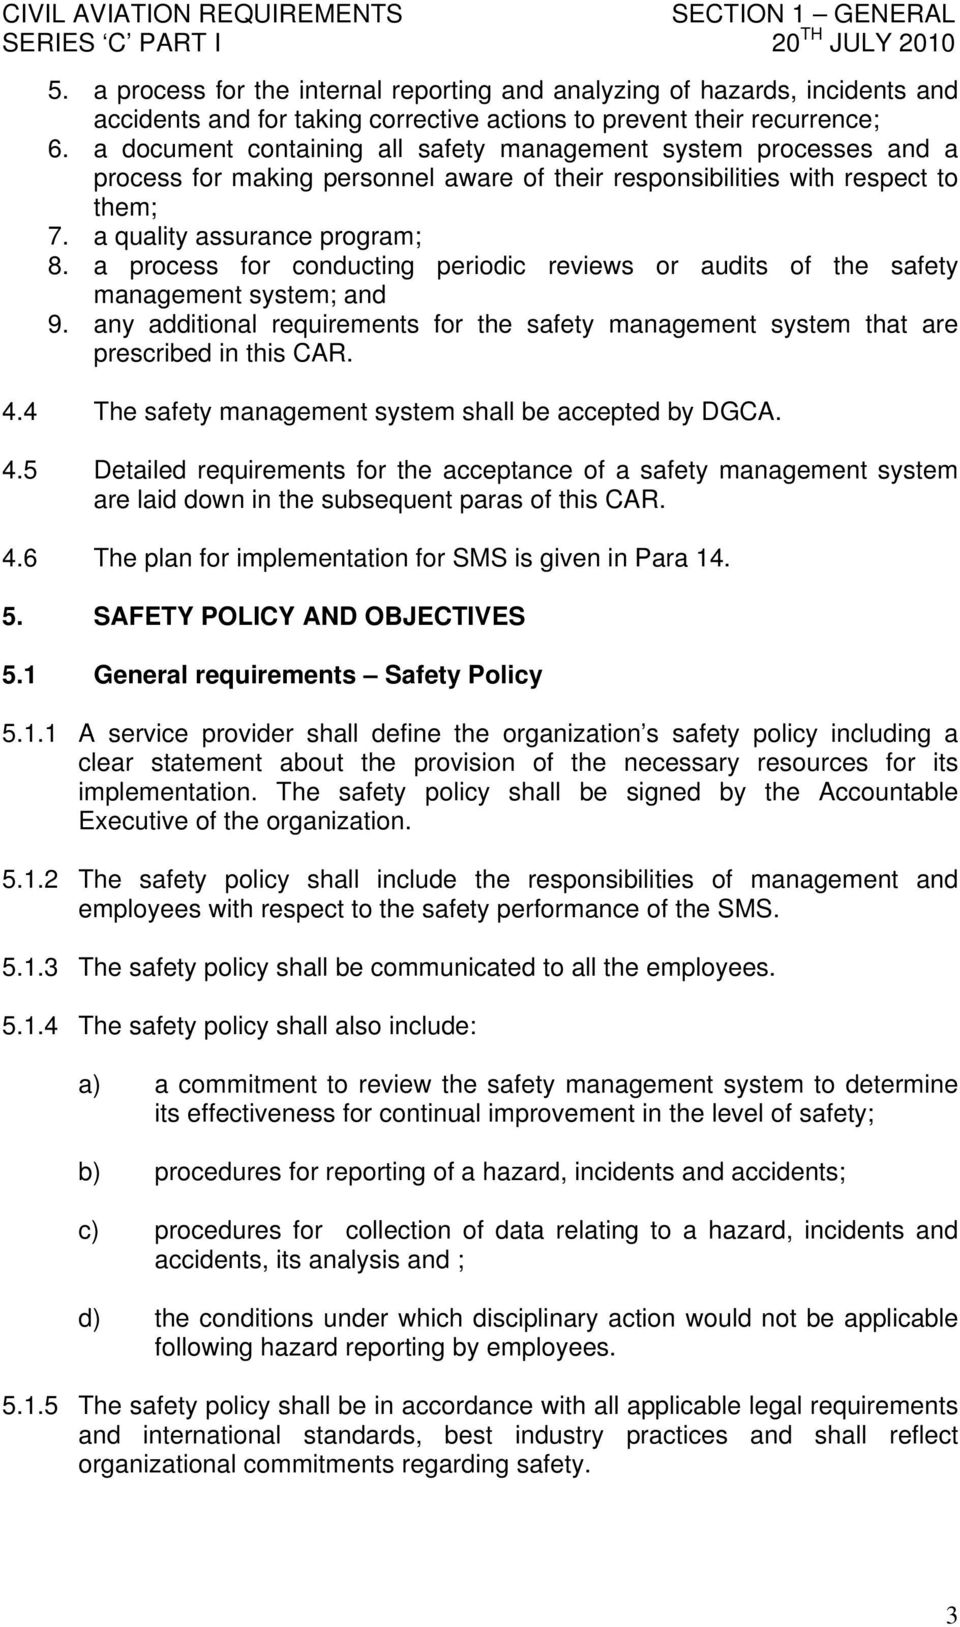 a process for conducting periodic reviews or audits of the safety management system; and 9. any additional requirements for the safety management system that are prescribed in this CAR. 4.